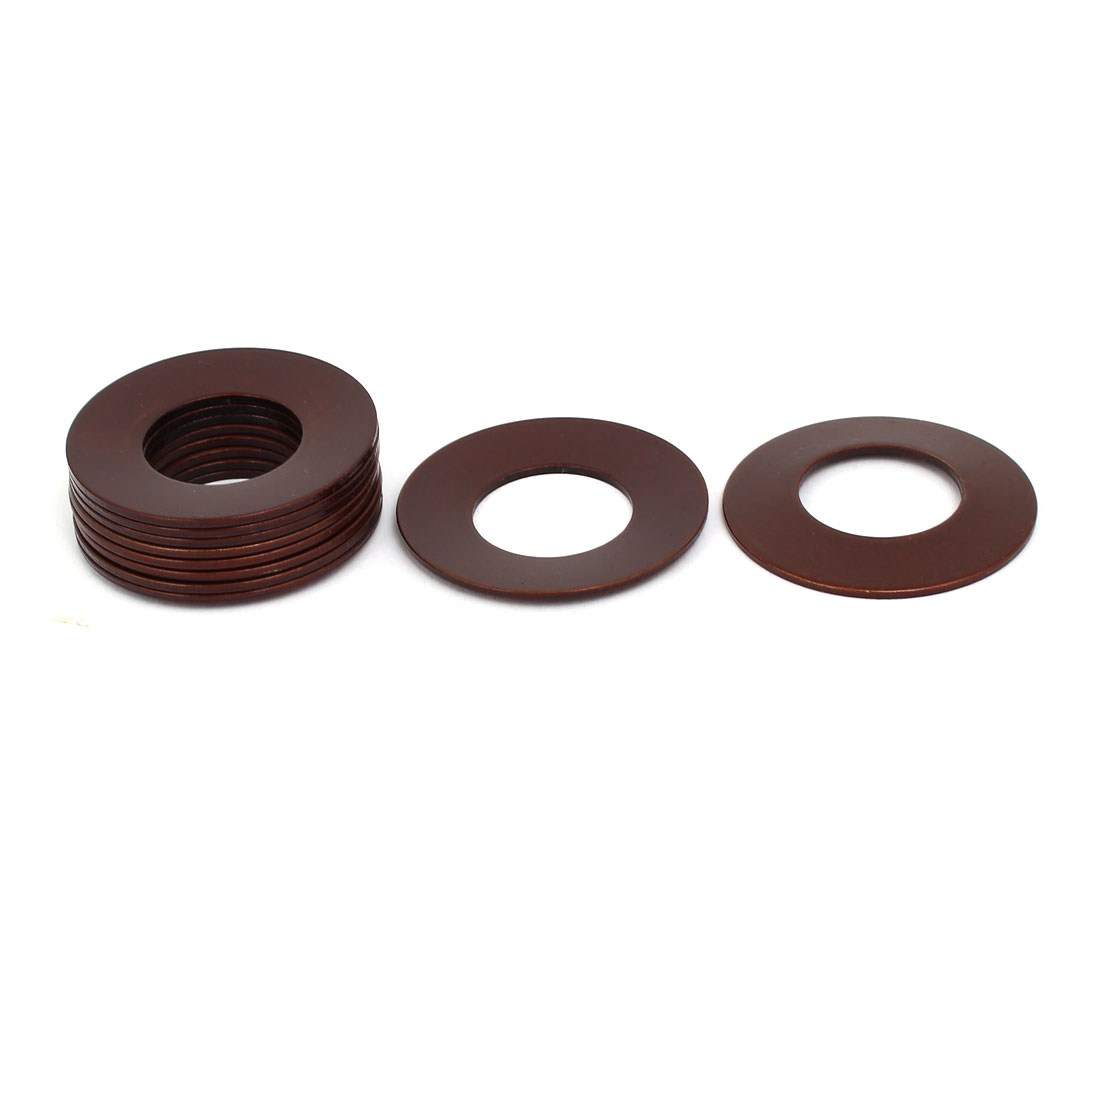 40mm Outer Dia 20.4mm Inner Dia 1.5mm Thickness Belleville Spring Washer 10pcs